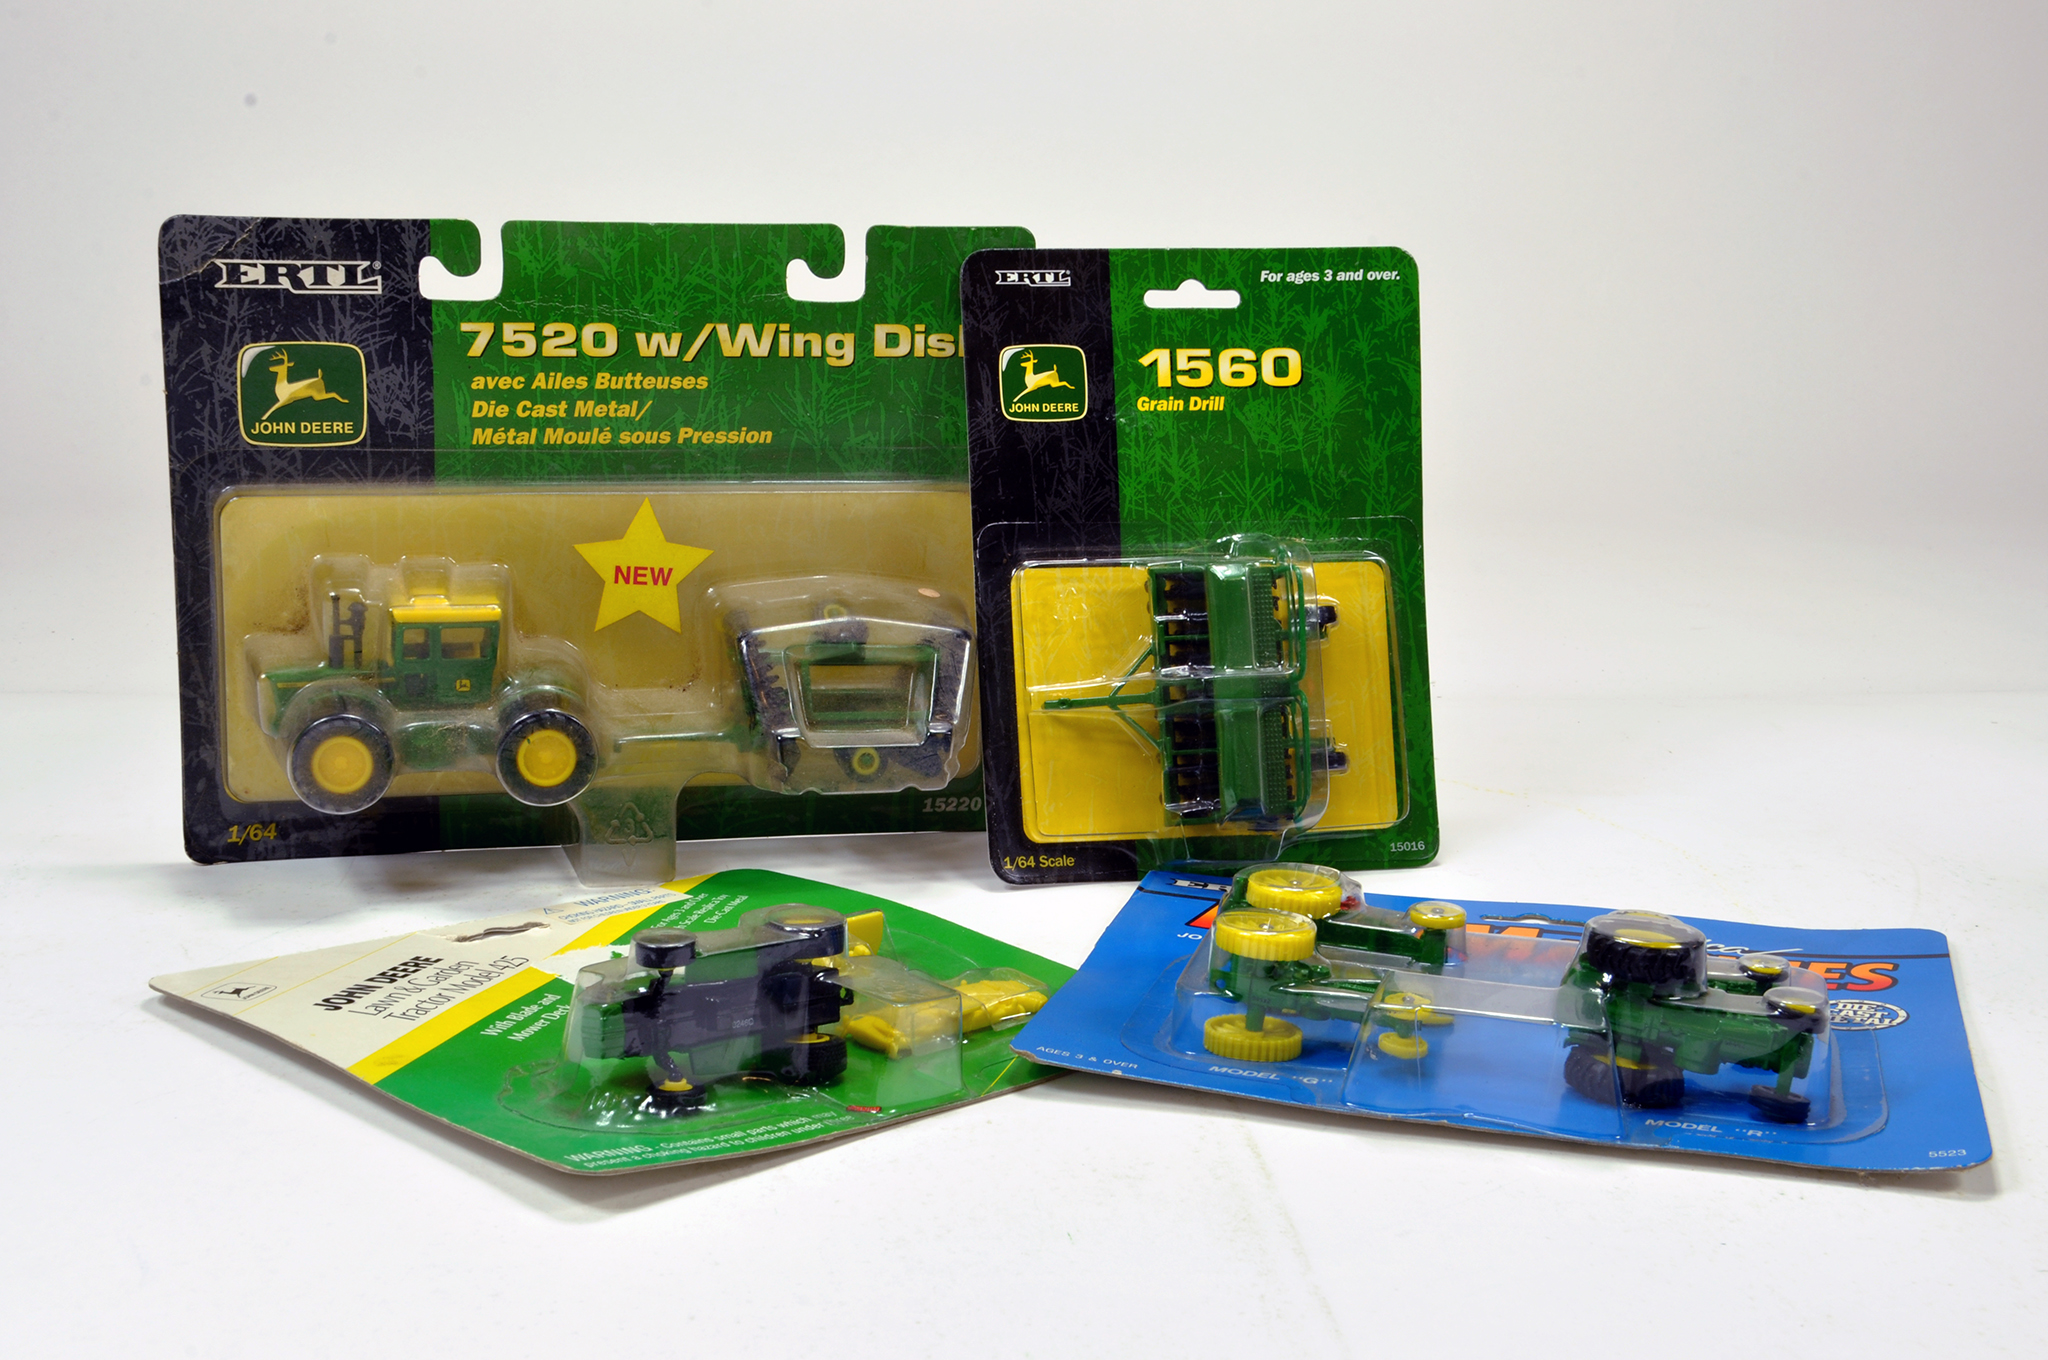 Lot 118 - Ertl 1/64 John Deere tractor and machinery group including 7520 tractor and others. Generally